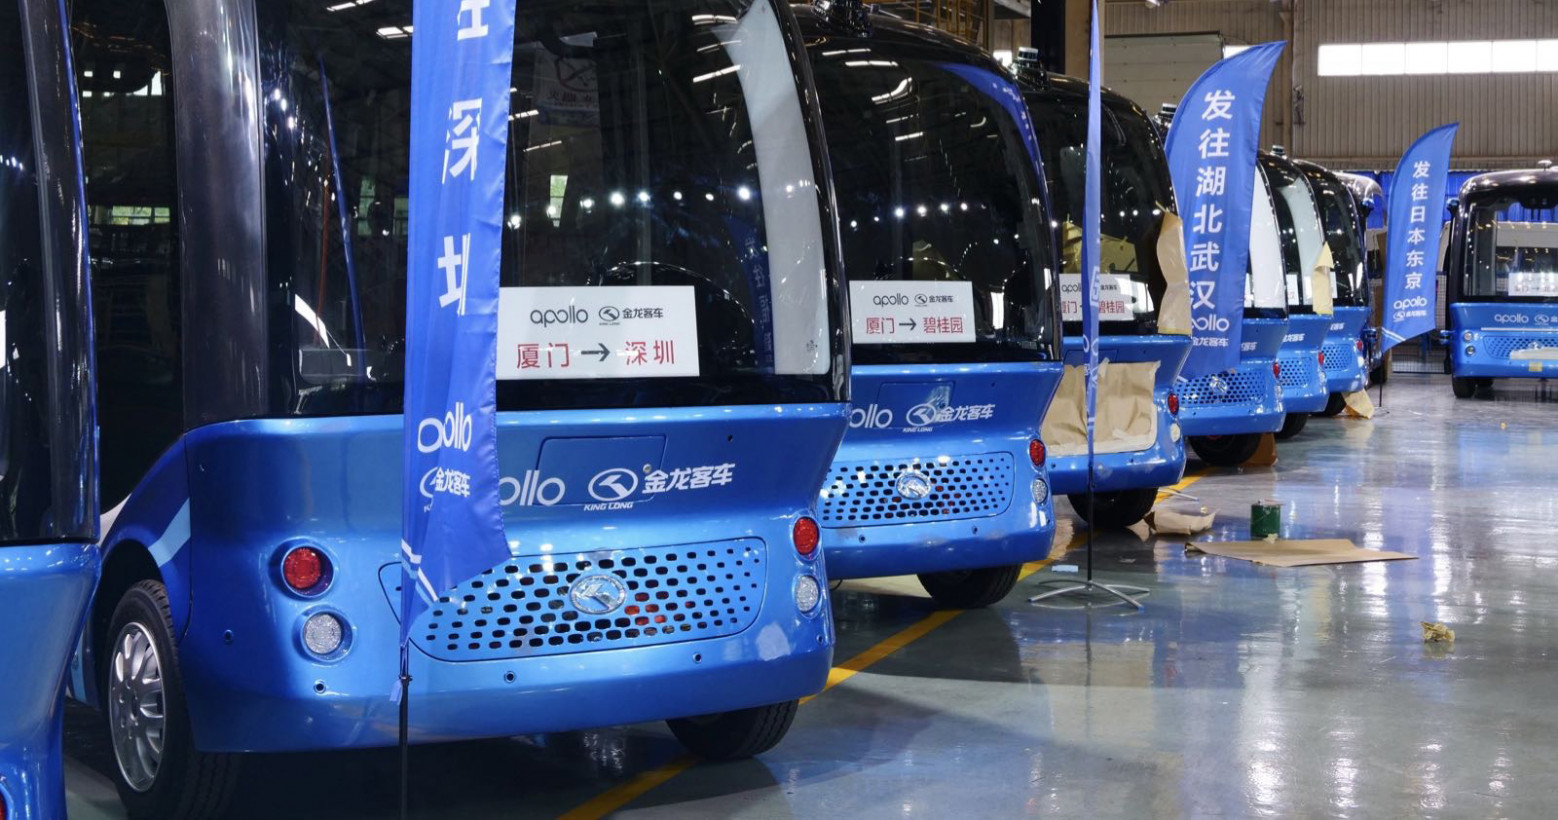 Baidu's self-driving buses will hit Japan's streets next year